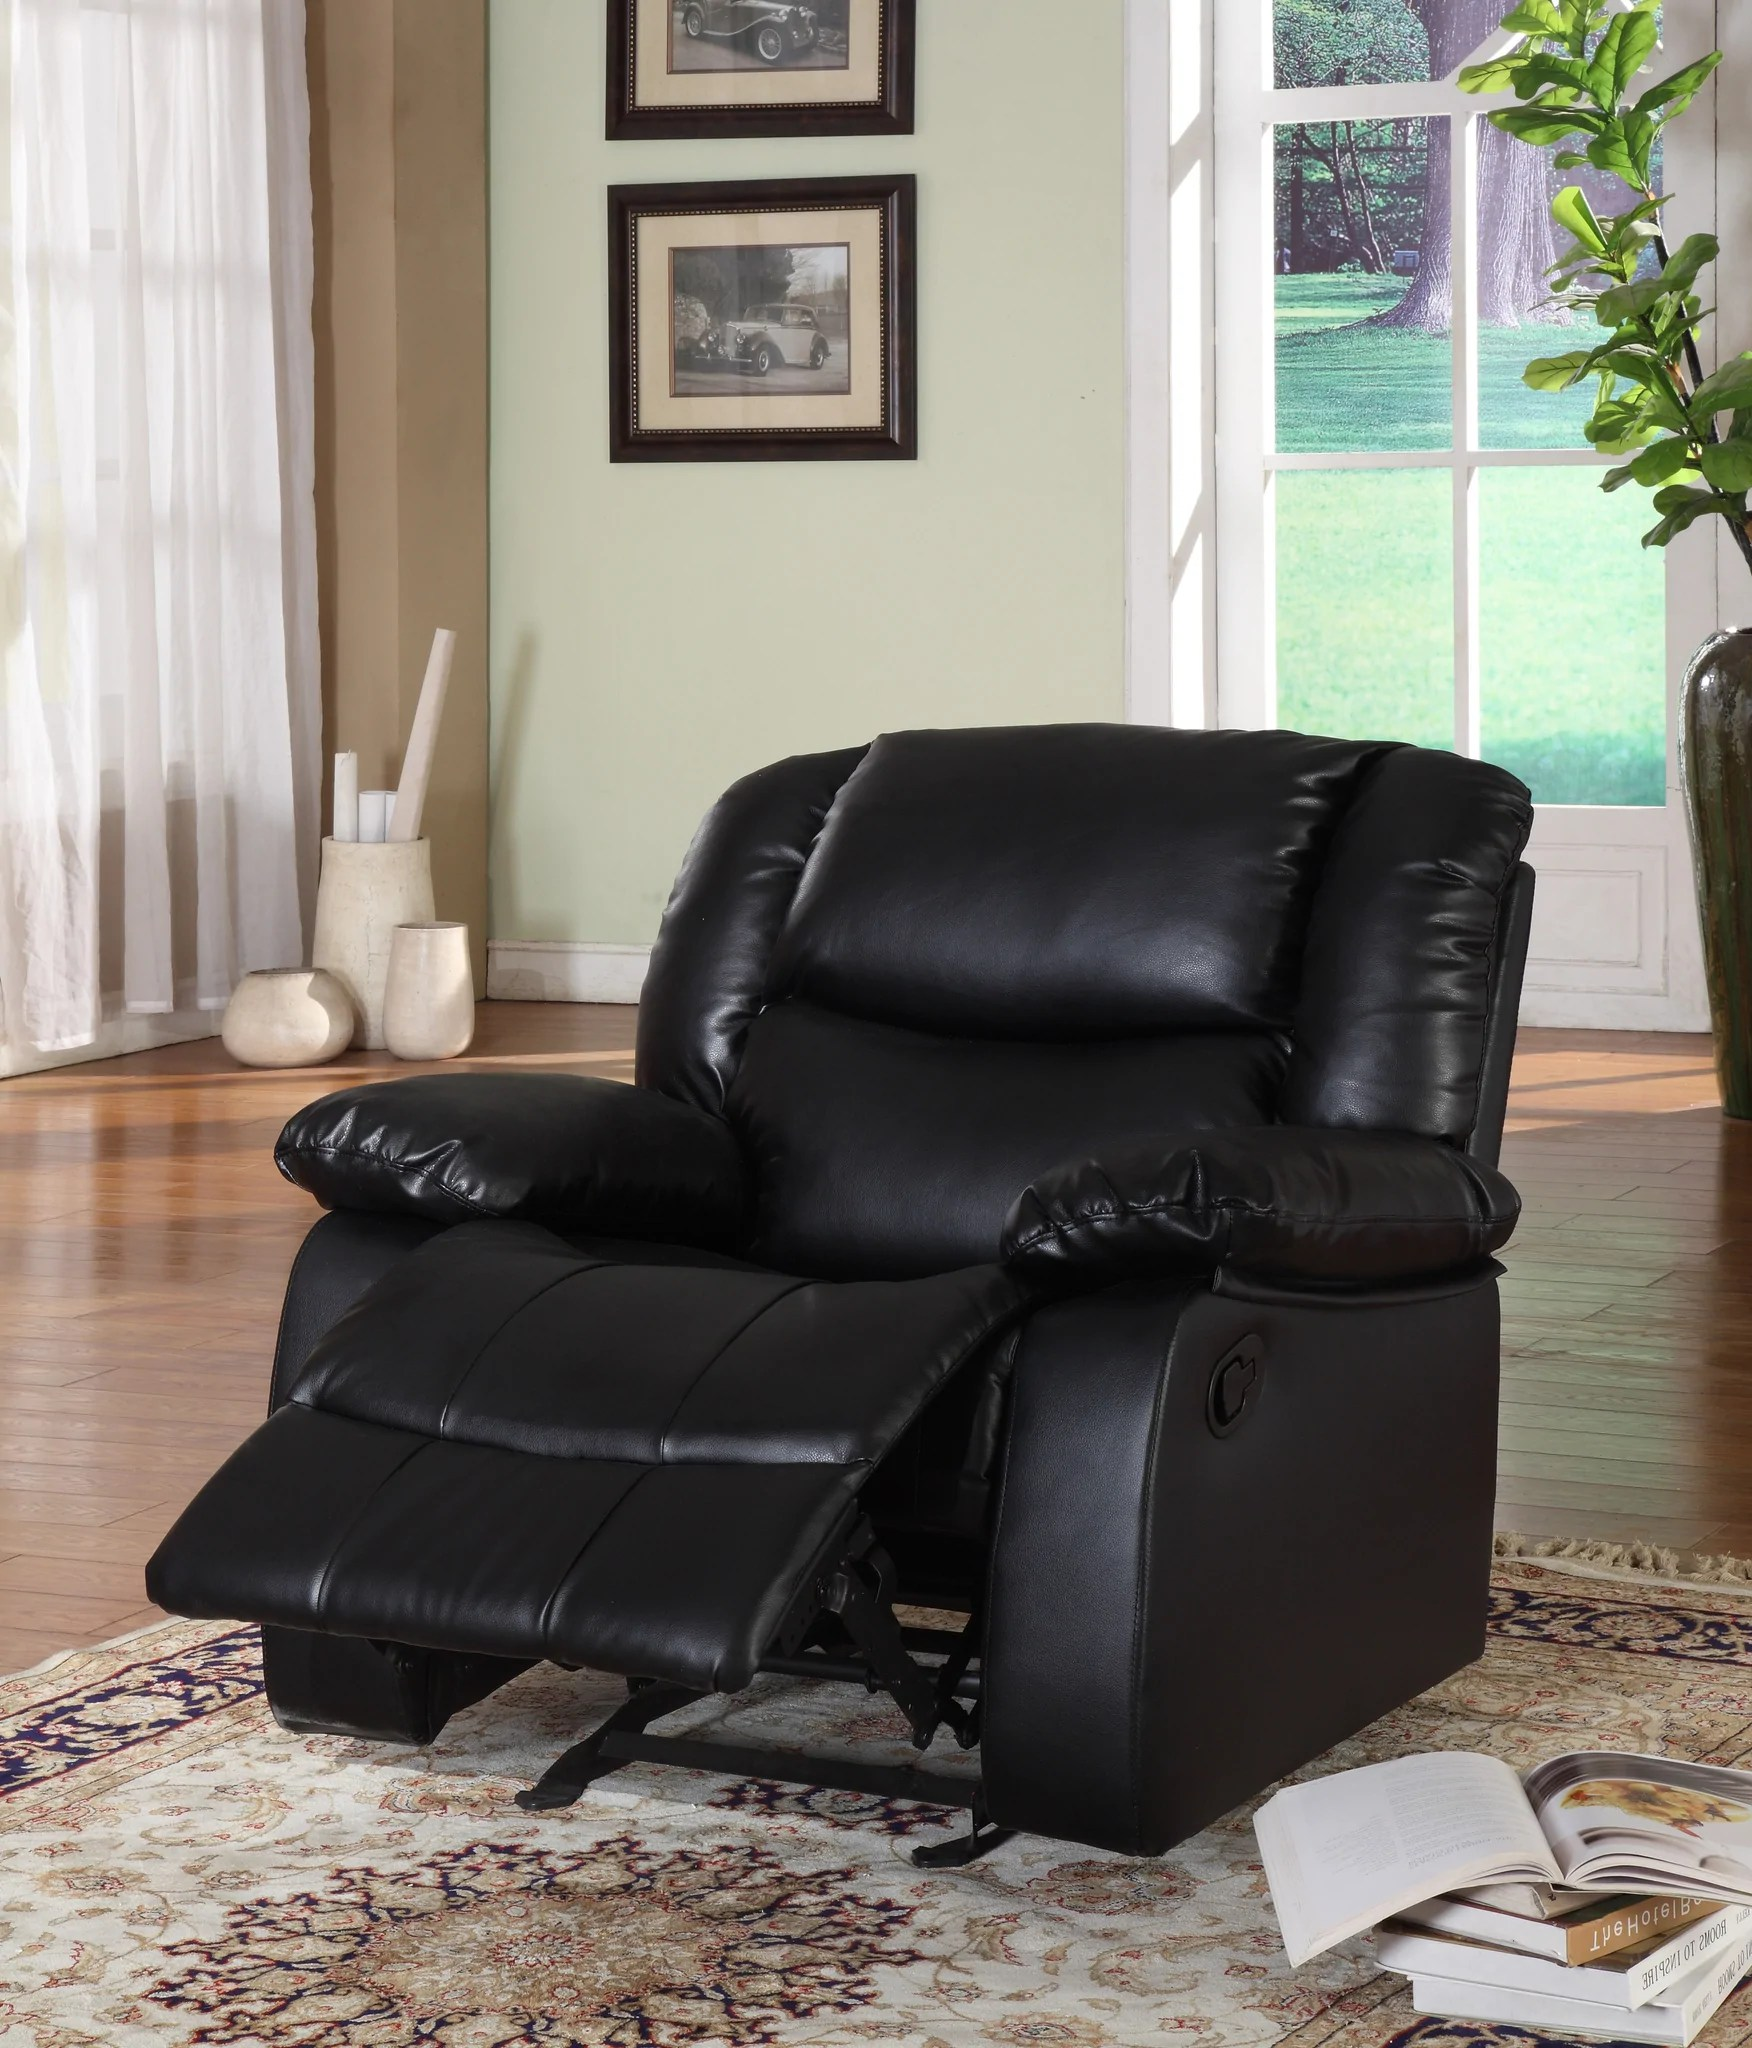 brooklyn bonded leather lounger chair and ottoman lounge black chocolate merlot or putty upholstered microfiber transitional configurable motion